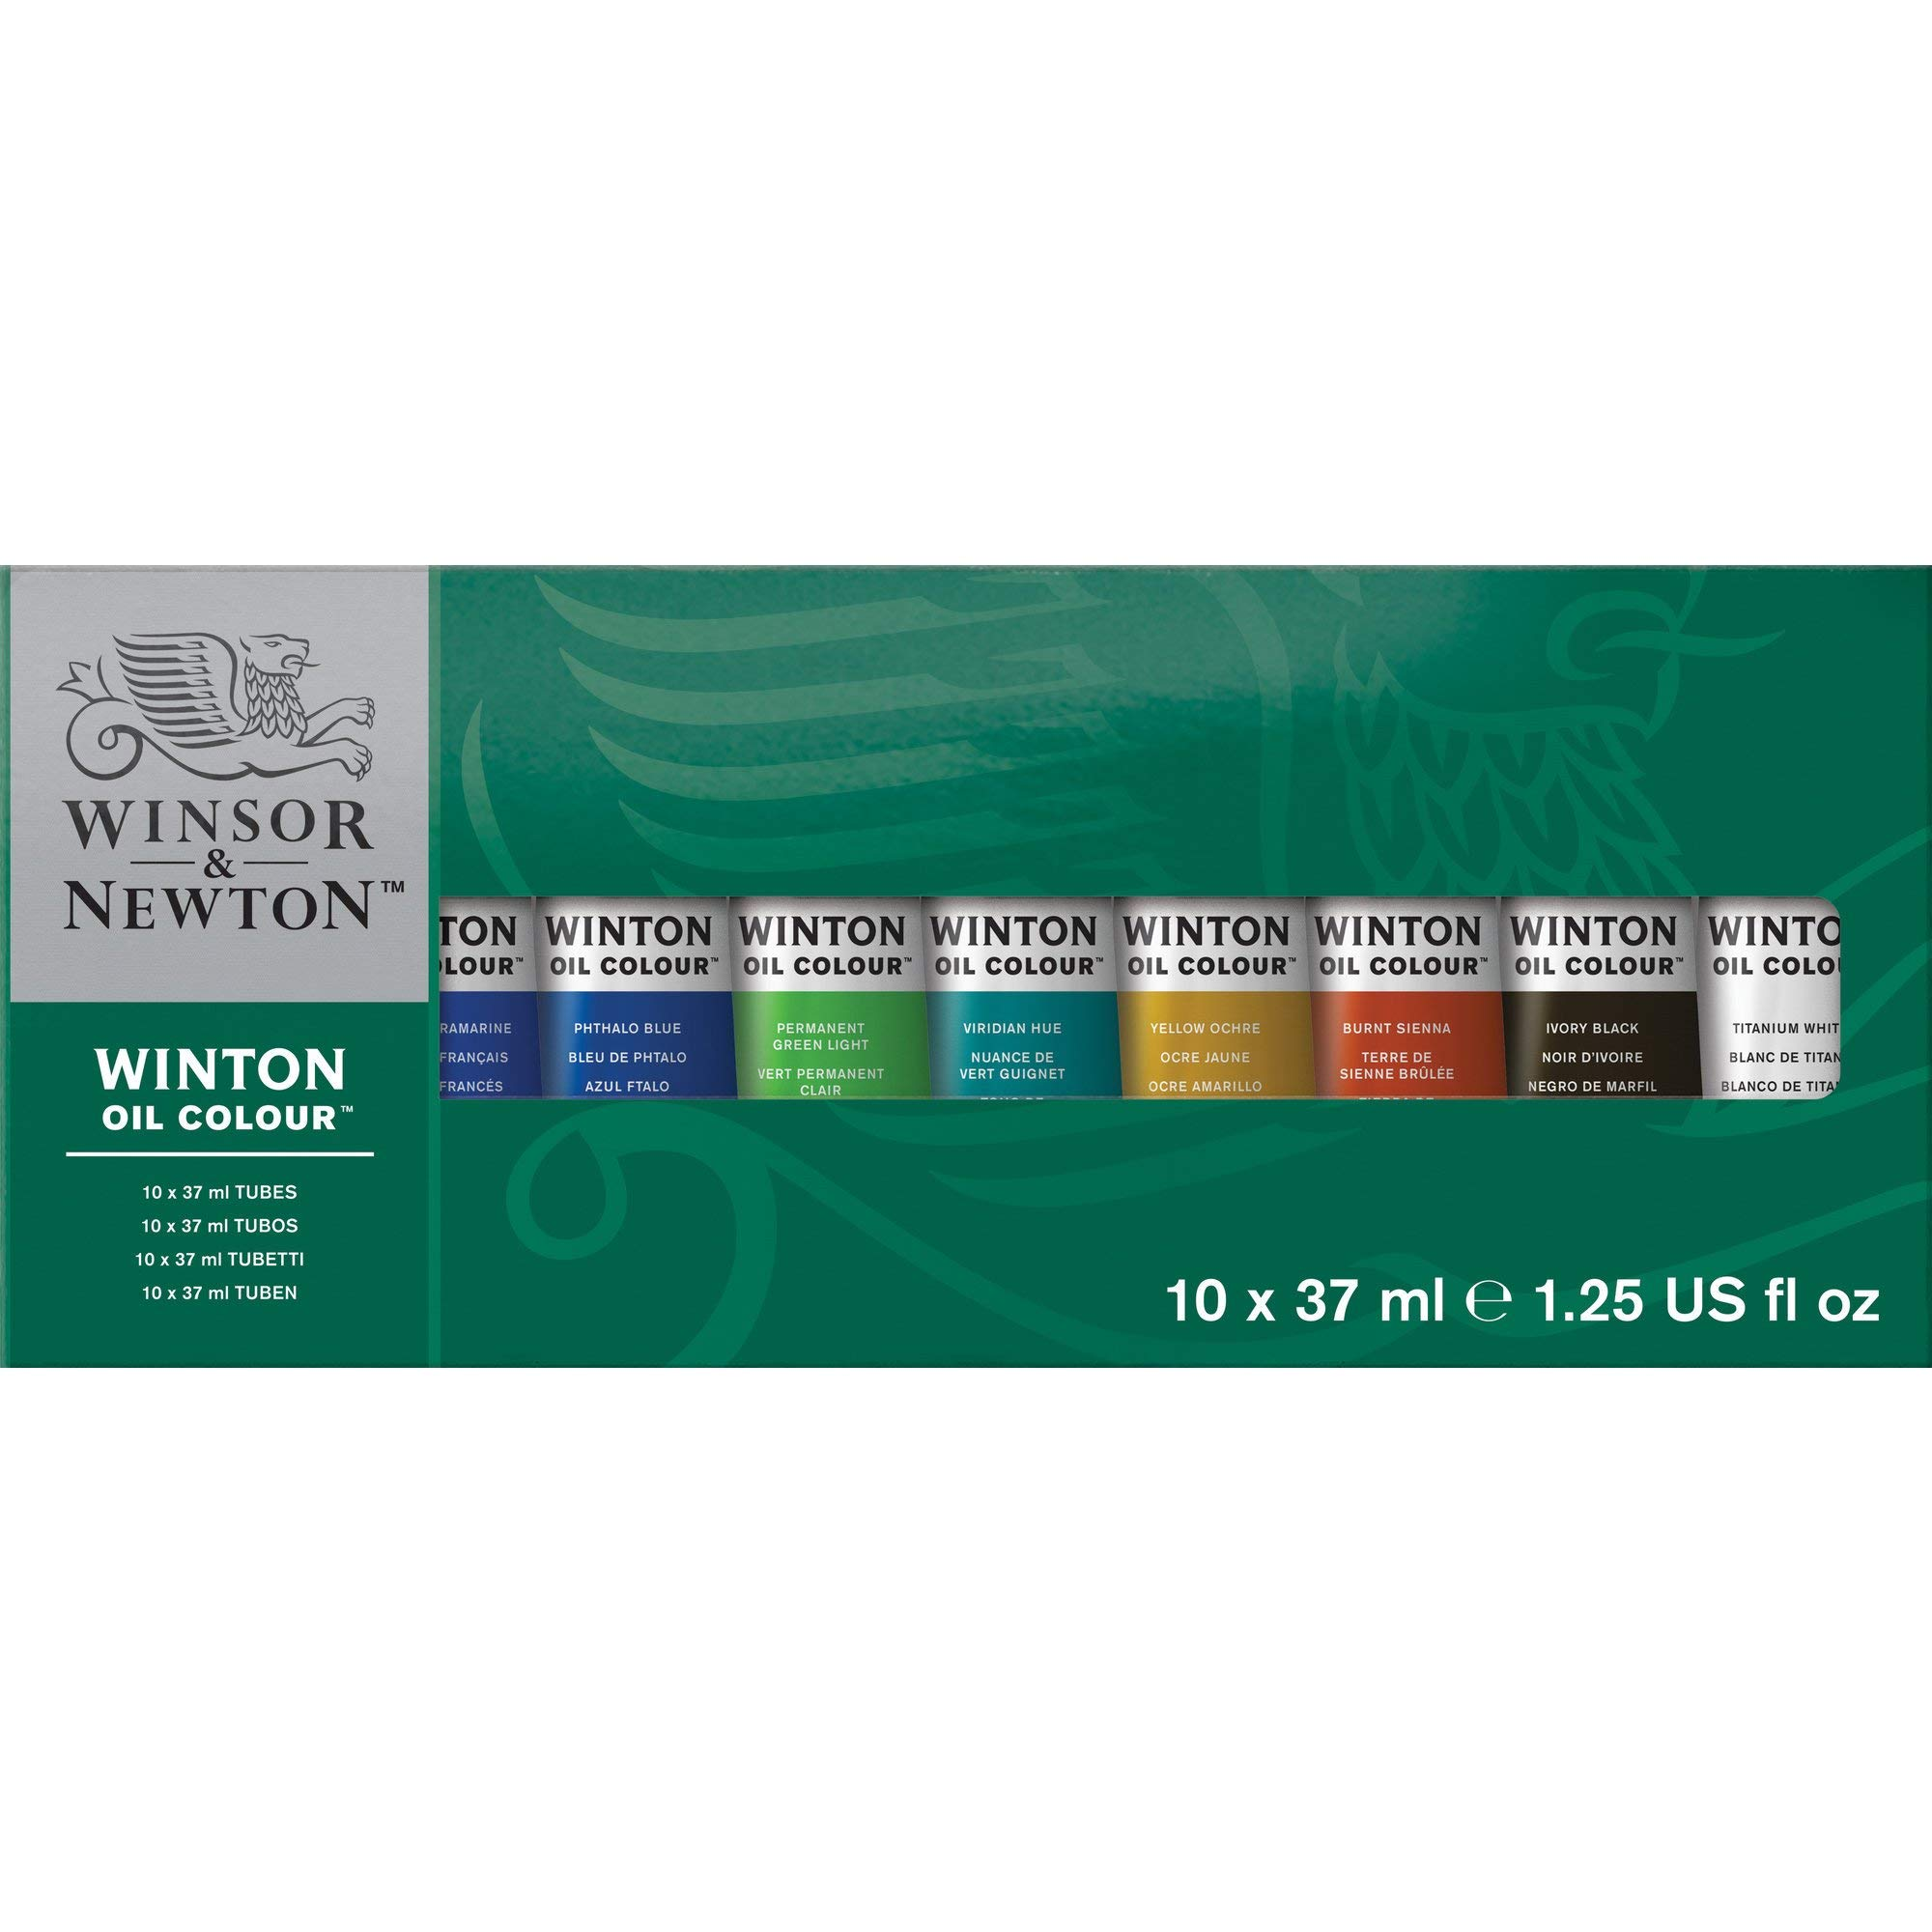 Winsor & Newton Winton Oil Colour Paint Starter Set, Ten 37ml Tubes by Winsor & Newton